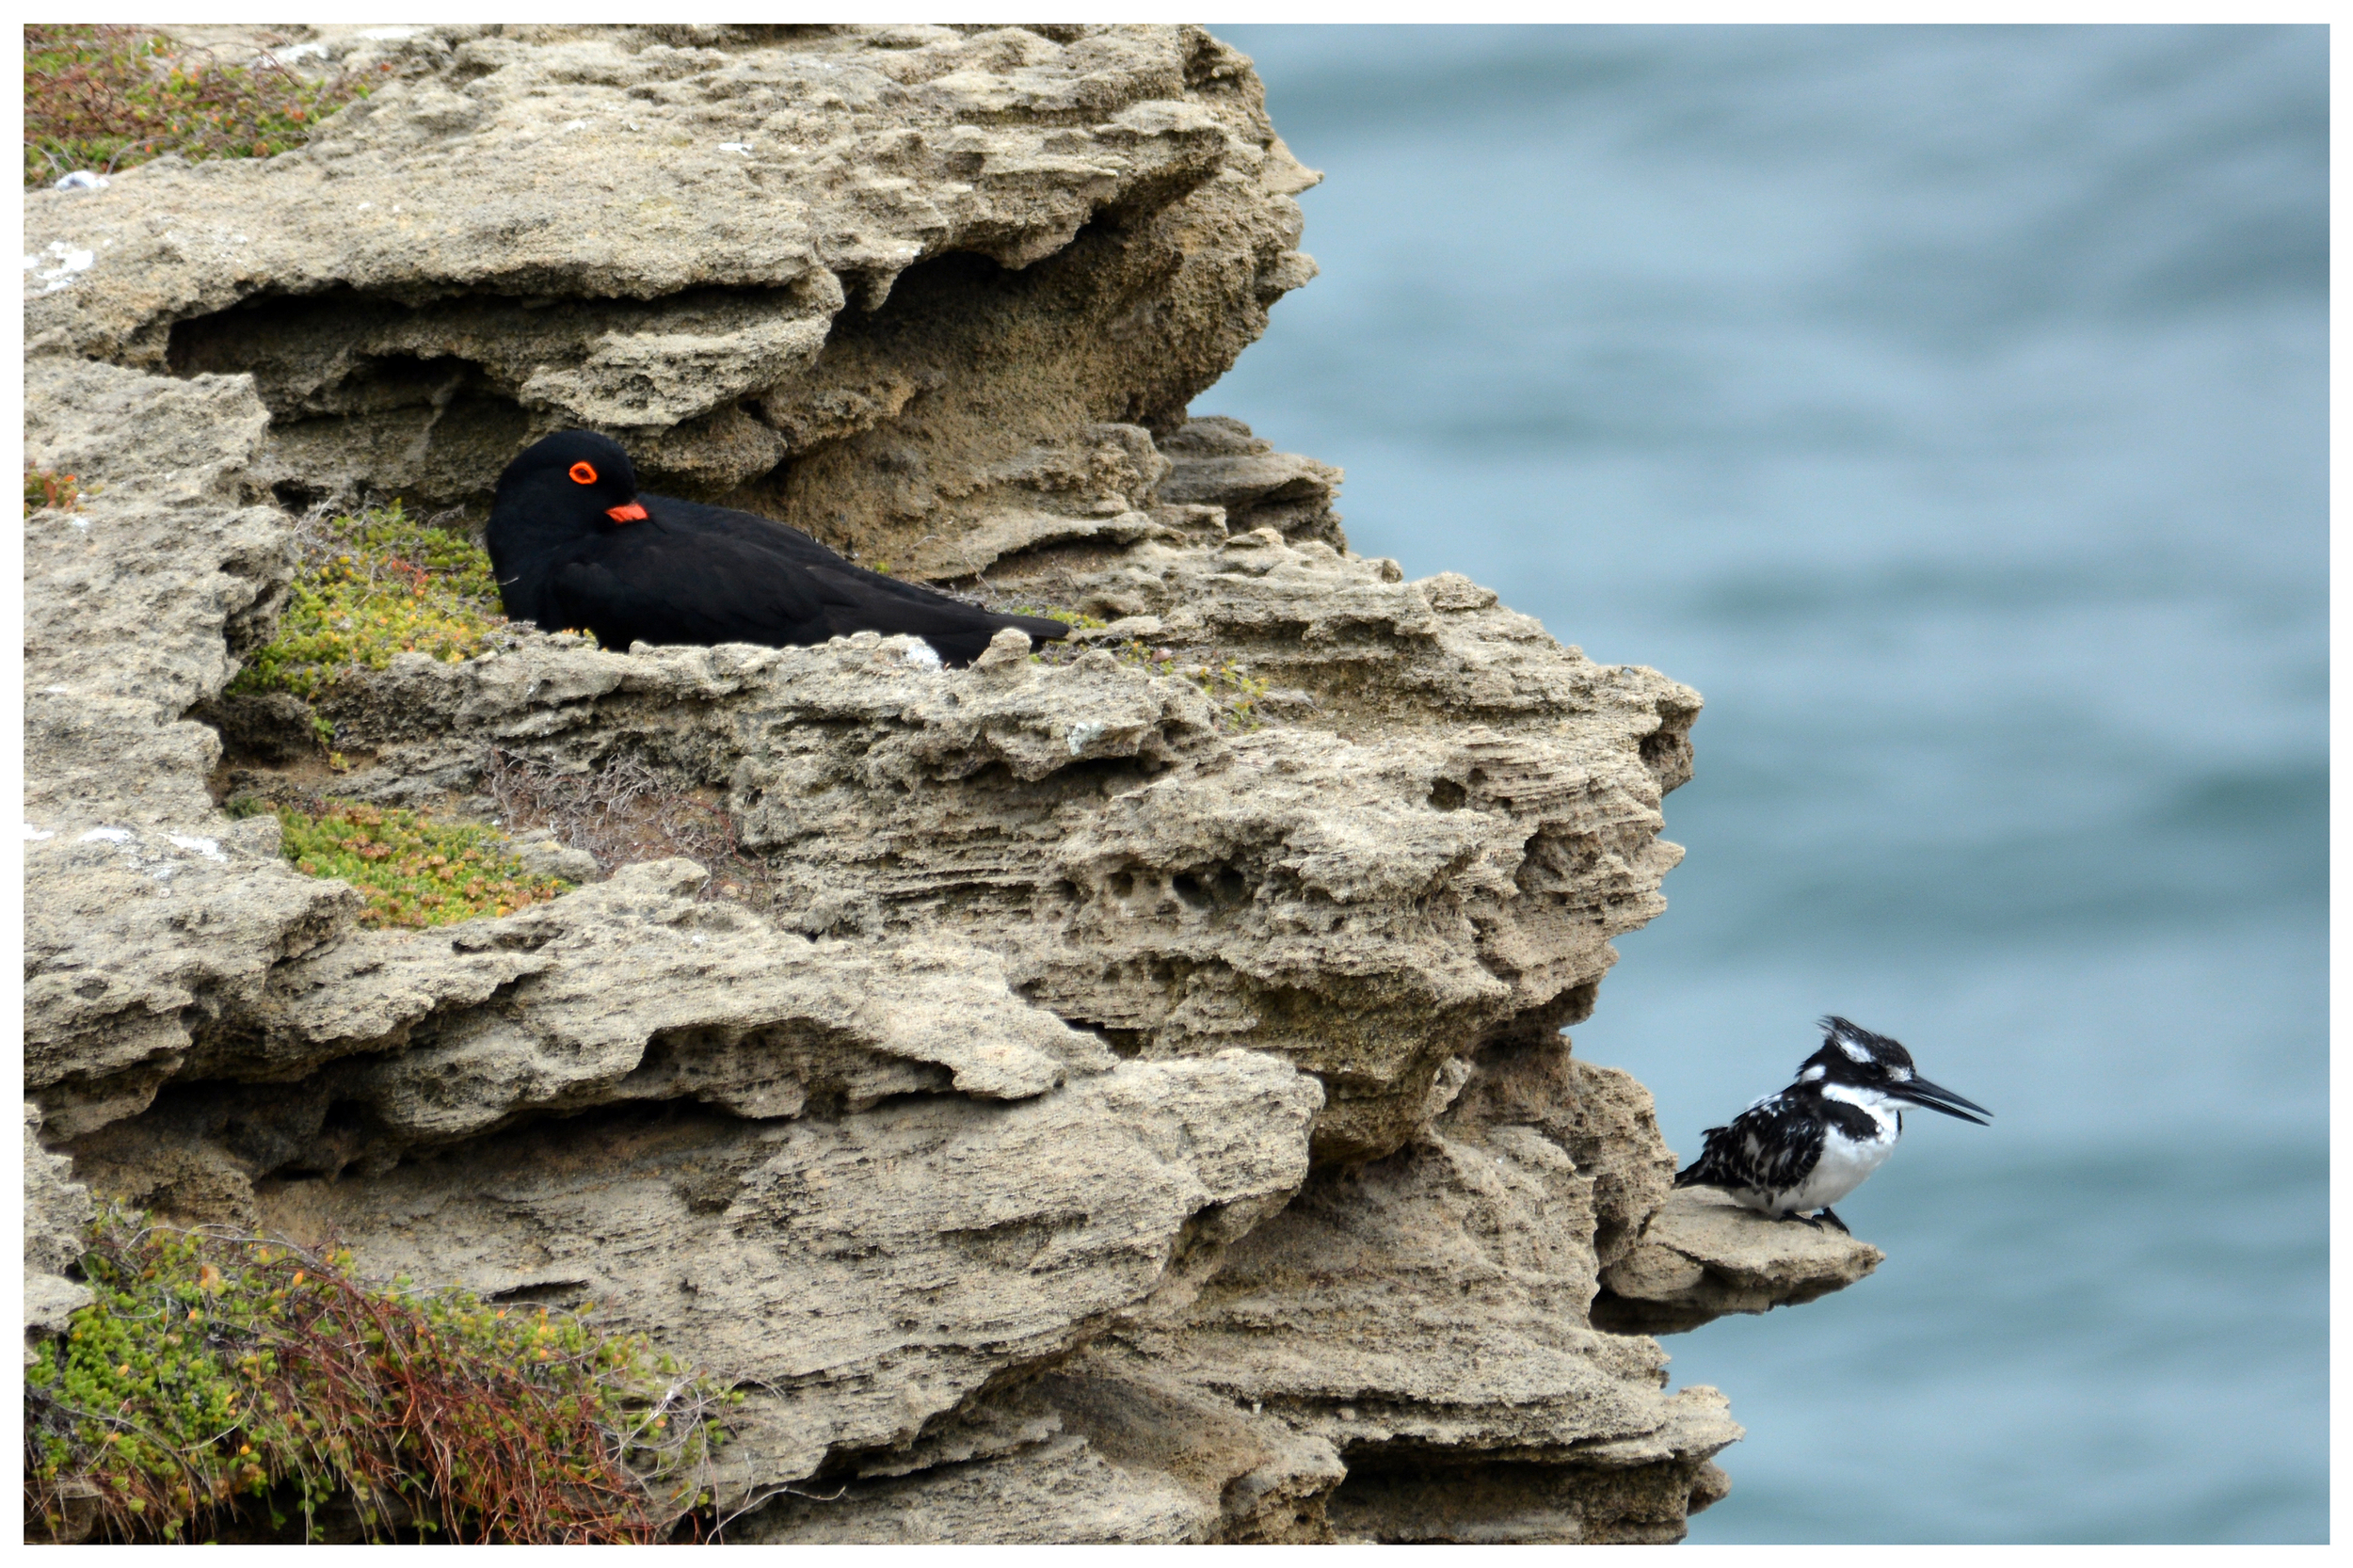 African Black Oystercatcher and Pied Kingfisher